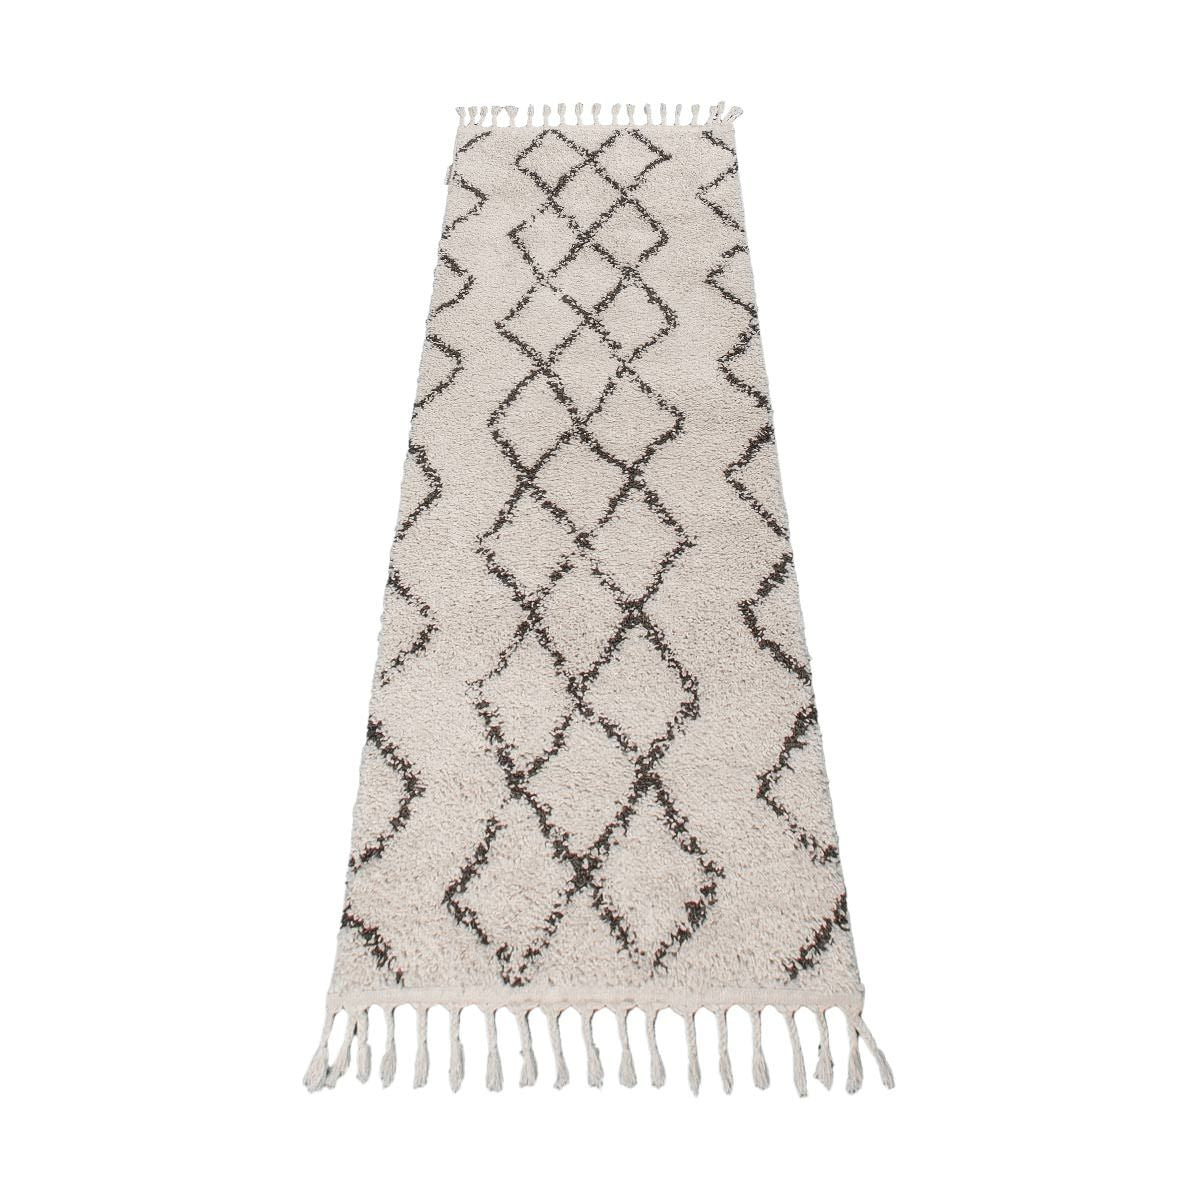 Shaggy Marrakech Rug 03 Cream/Black Runner 6